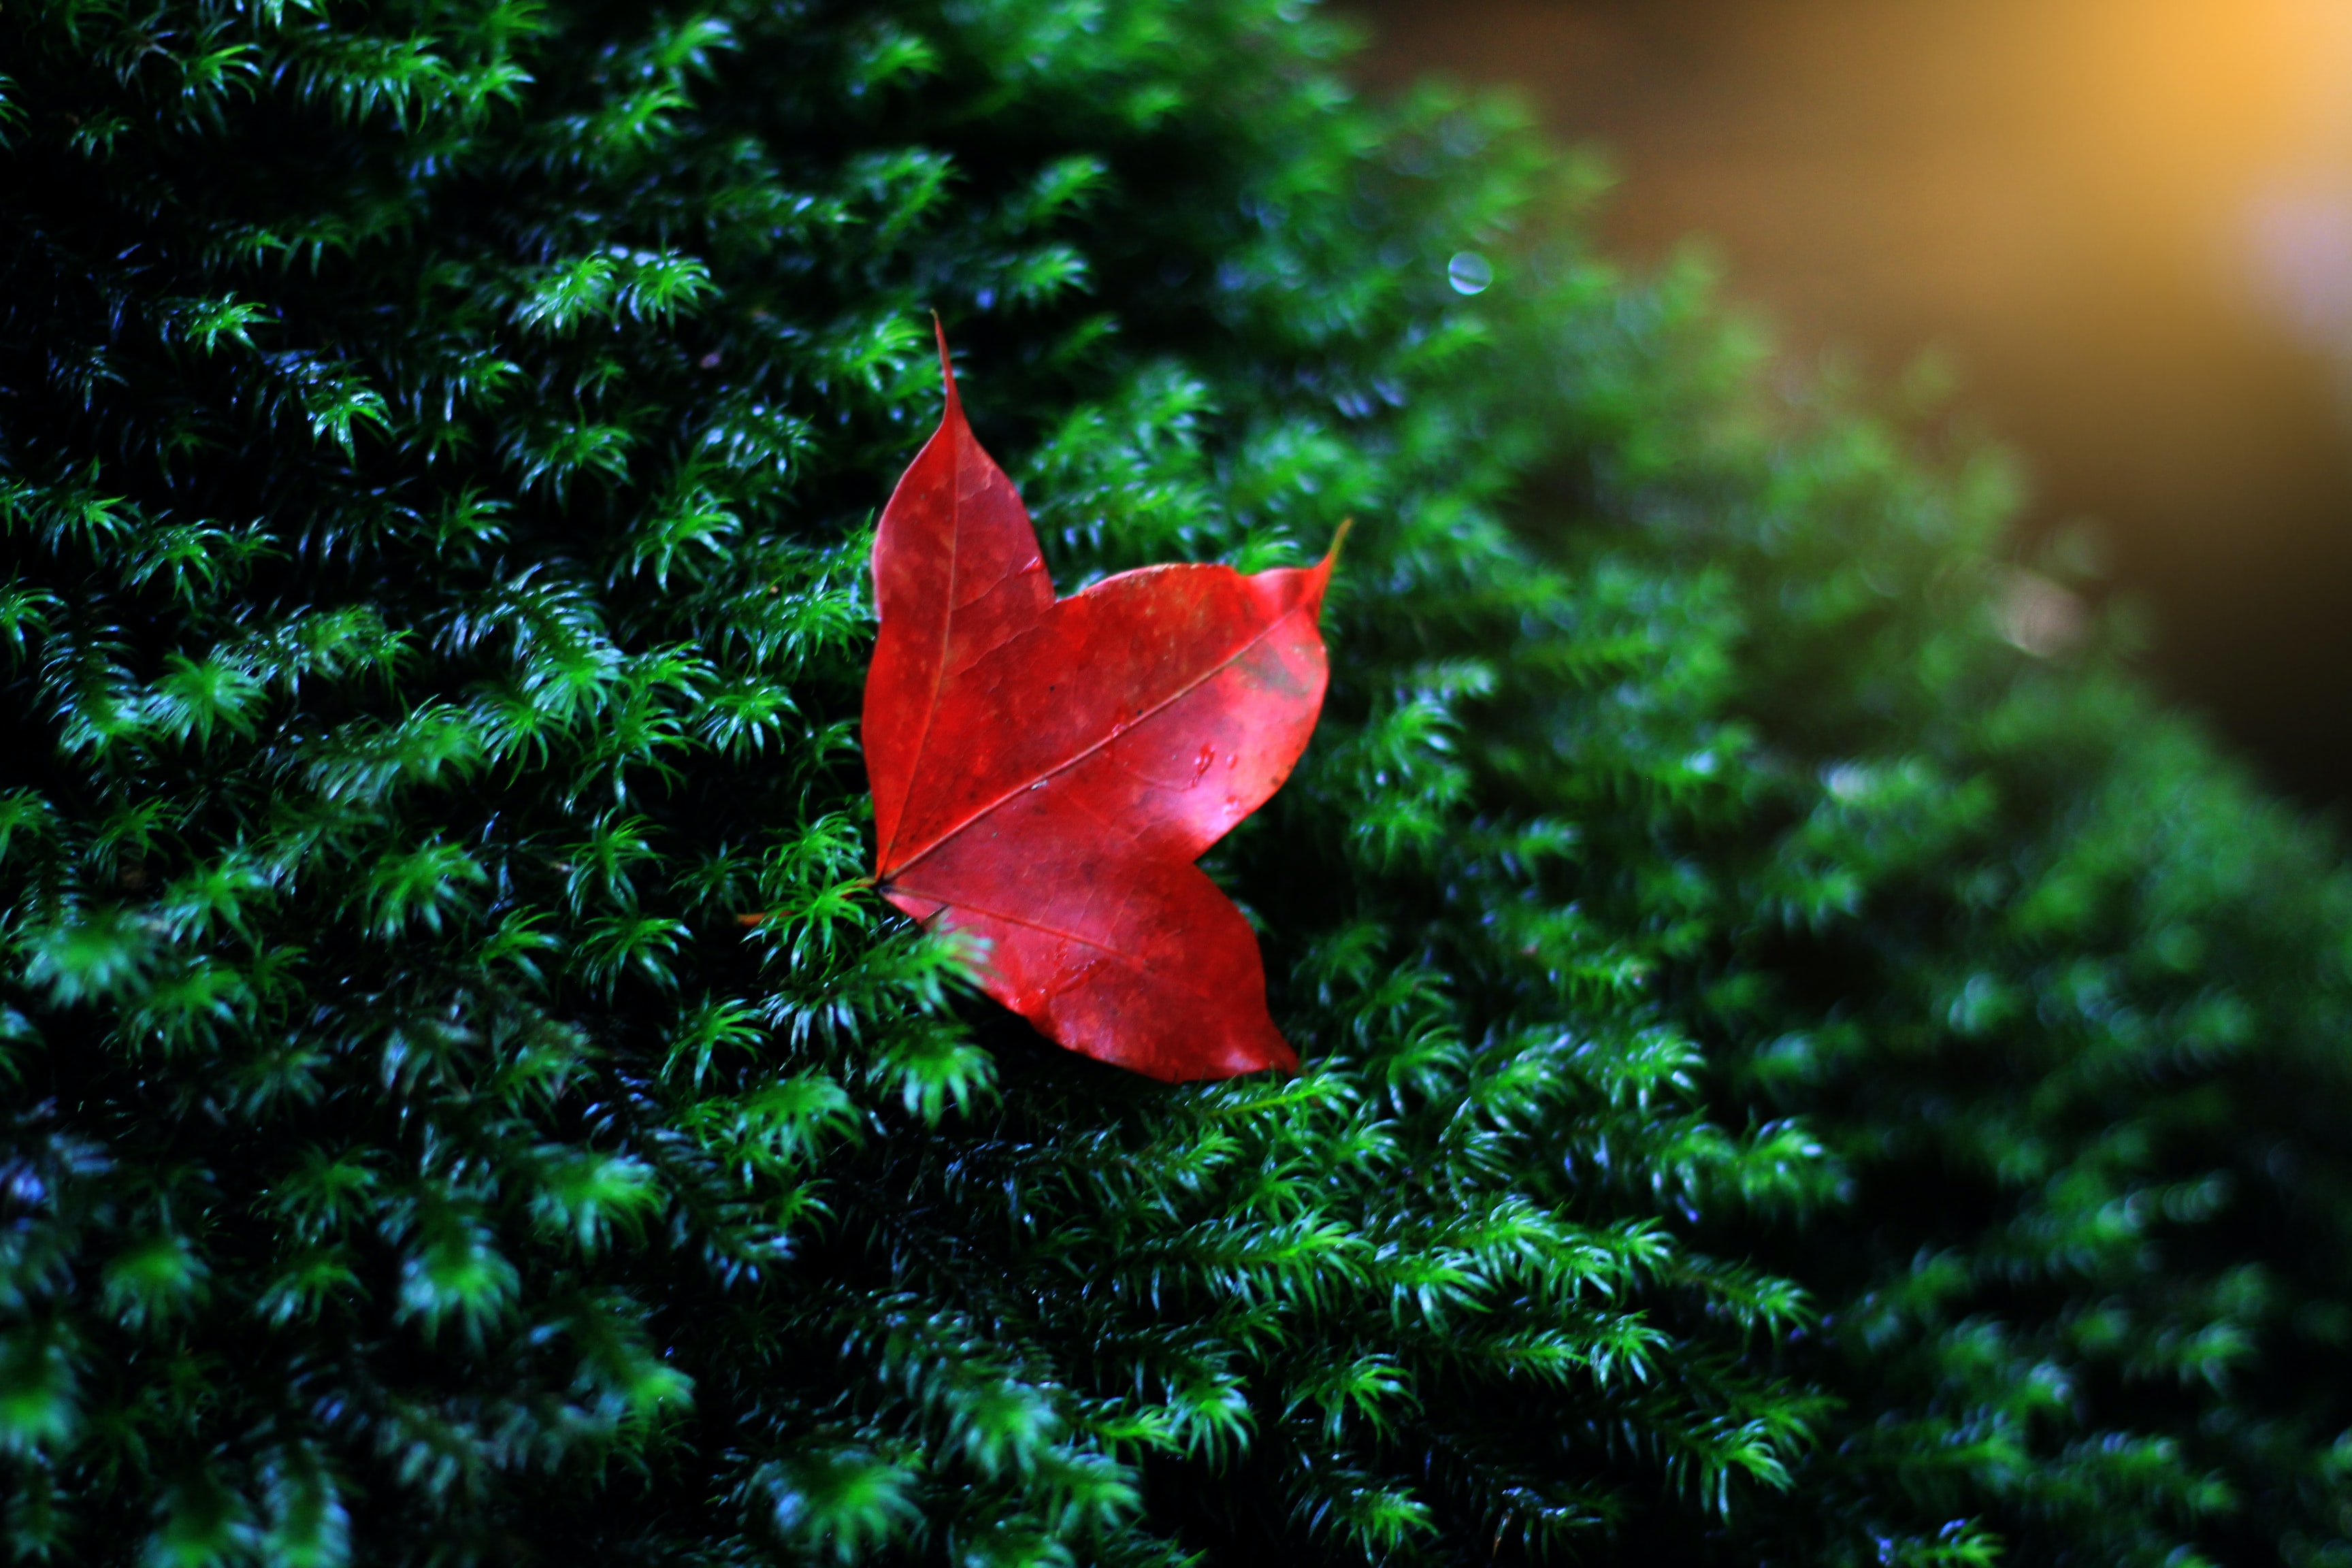 red leaf in shallow photo